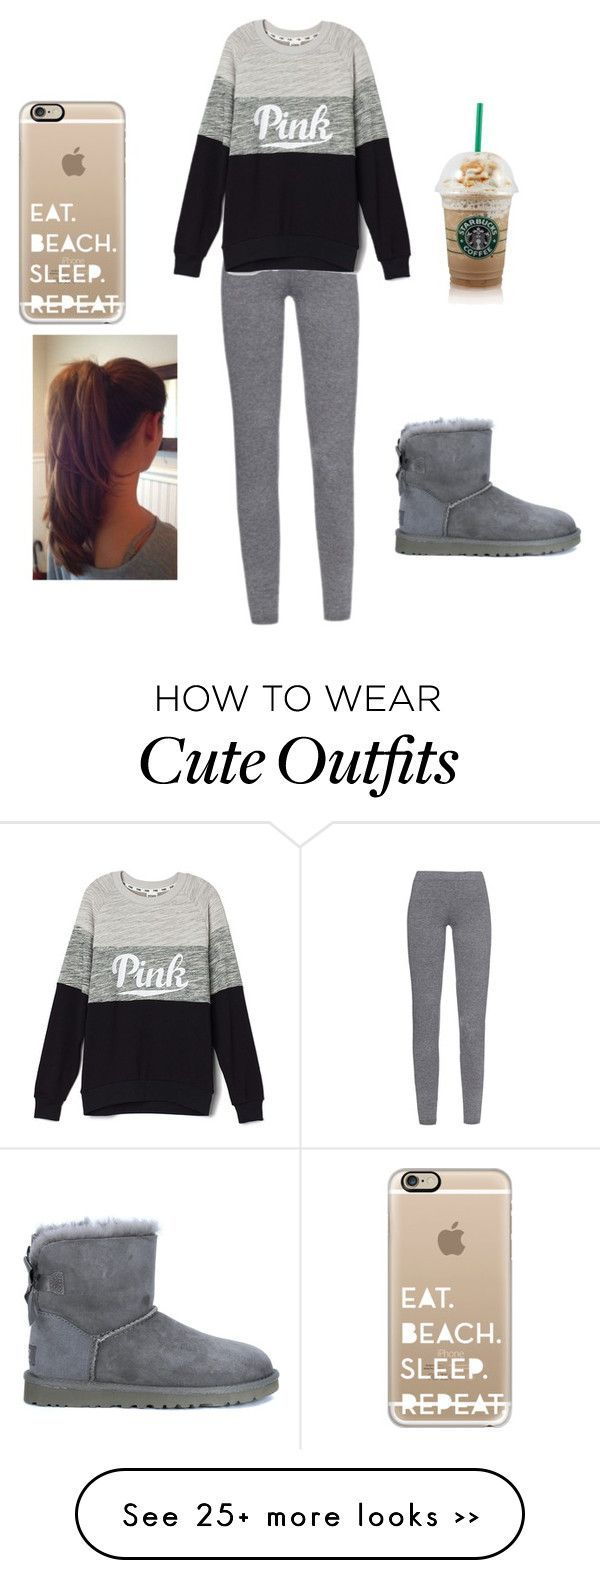 Winter outfit by kimberlylovesbatman on Polyvore featuring MaxMara, UGG Australia and Casetify